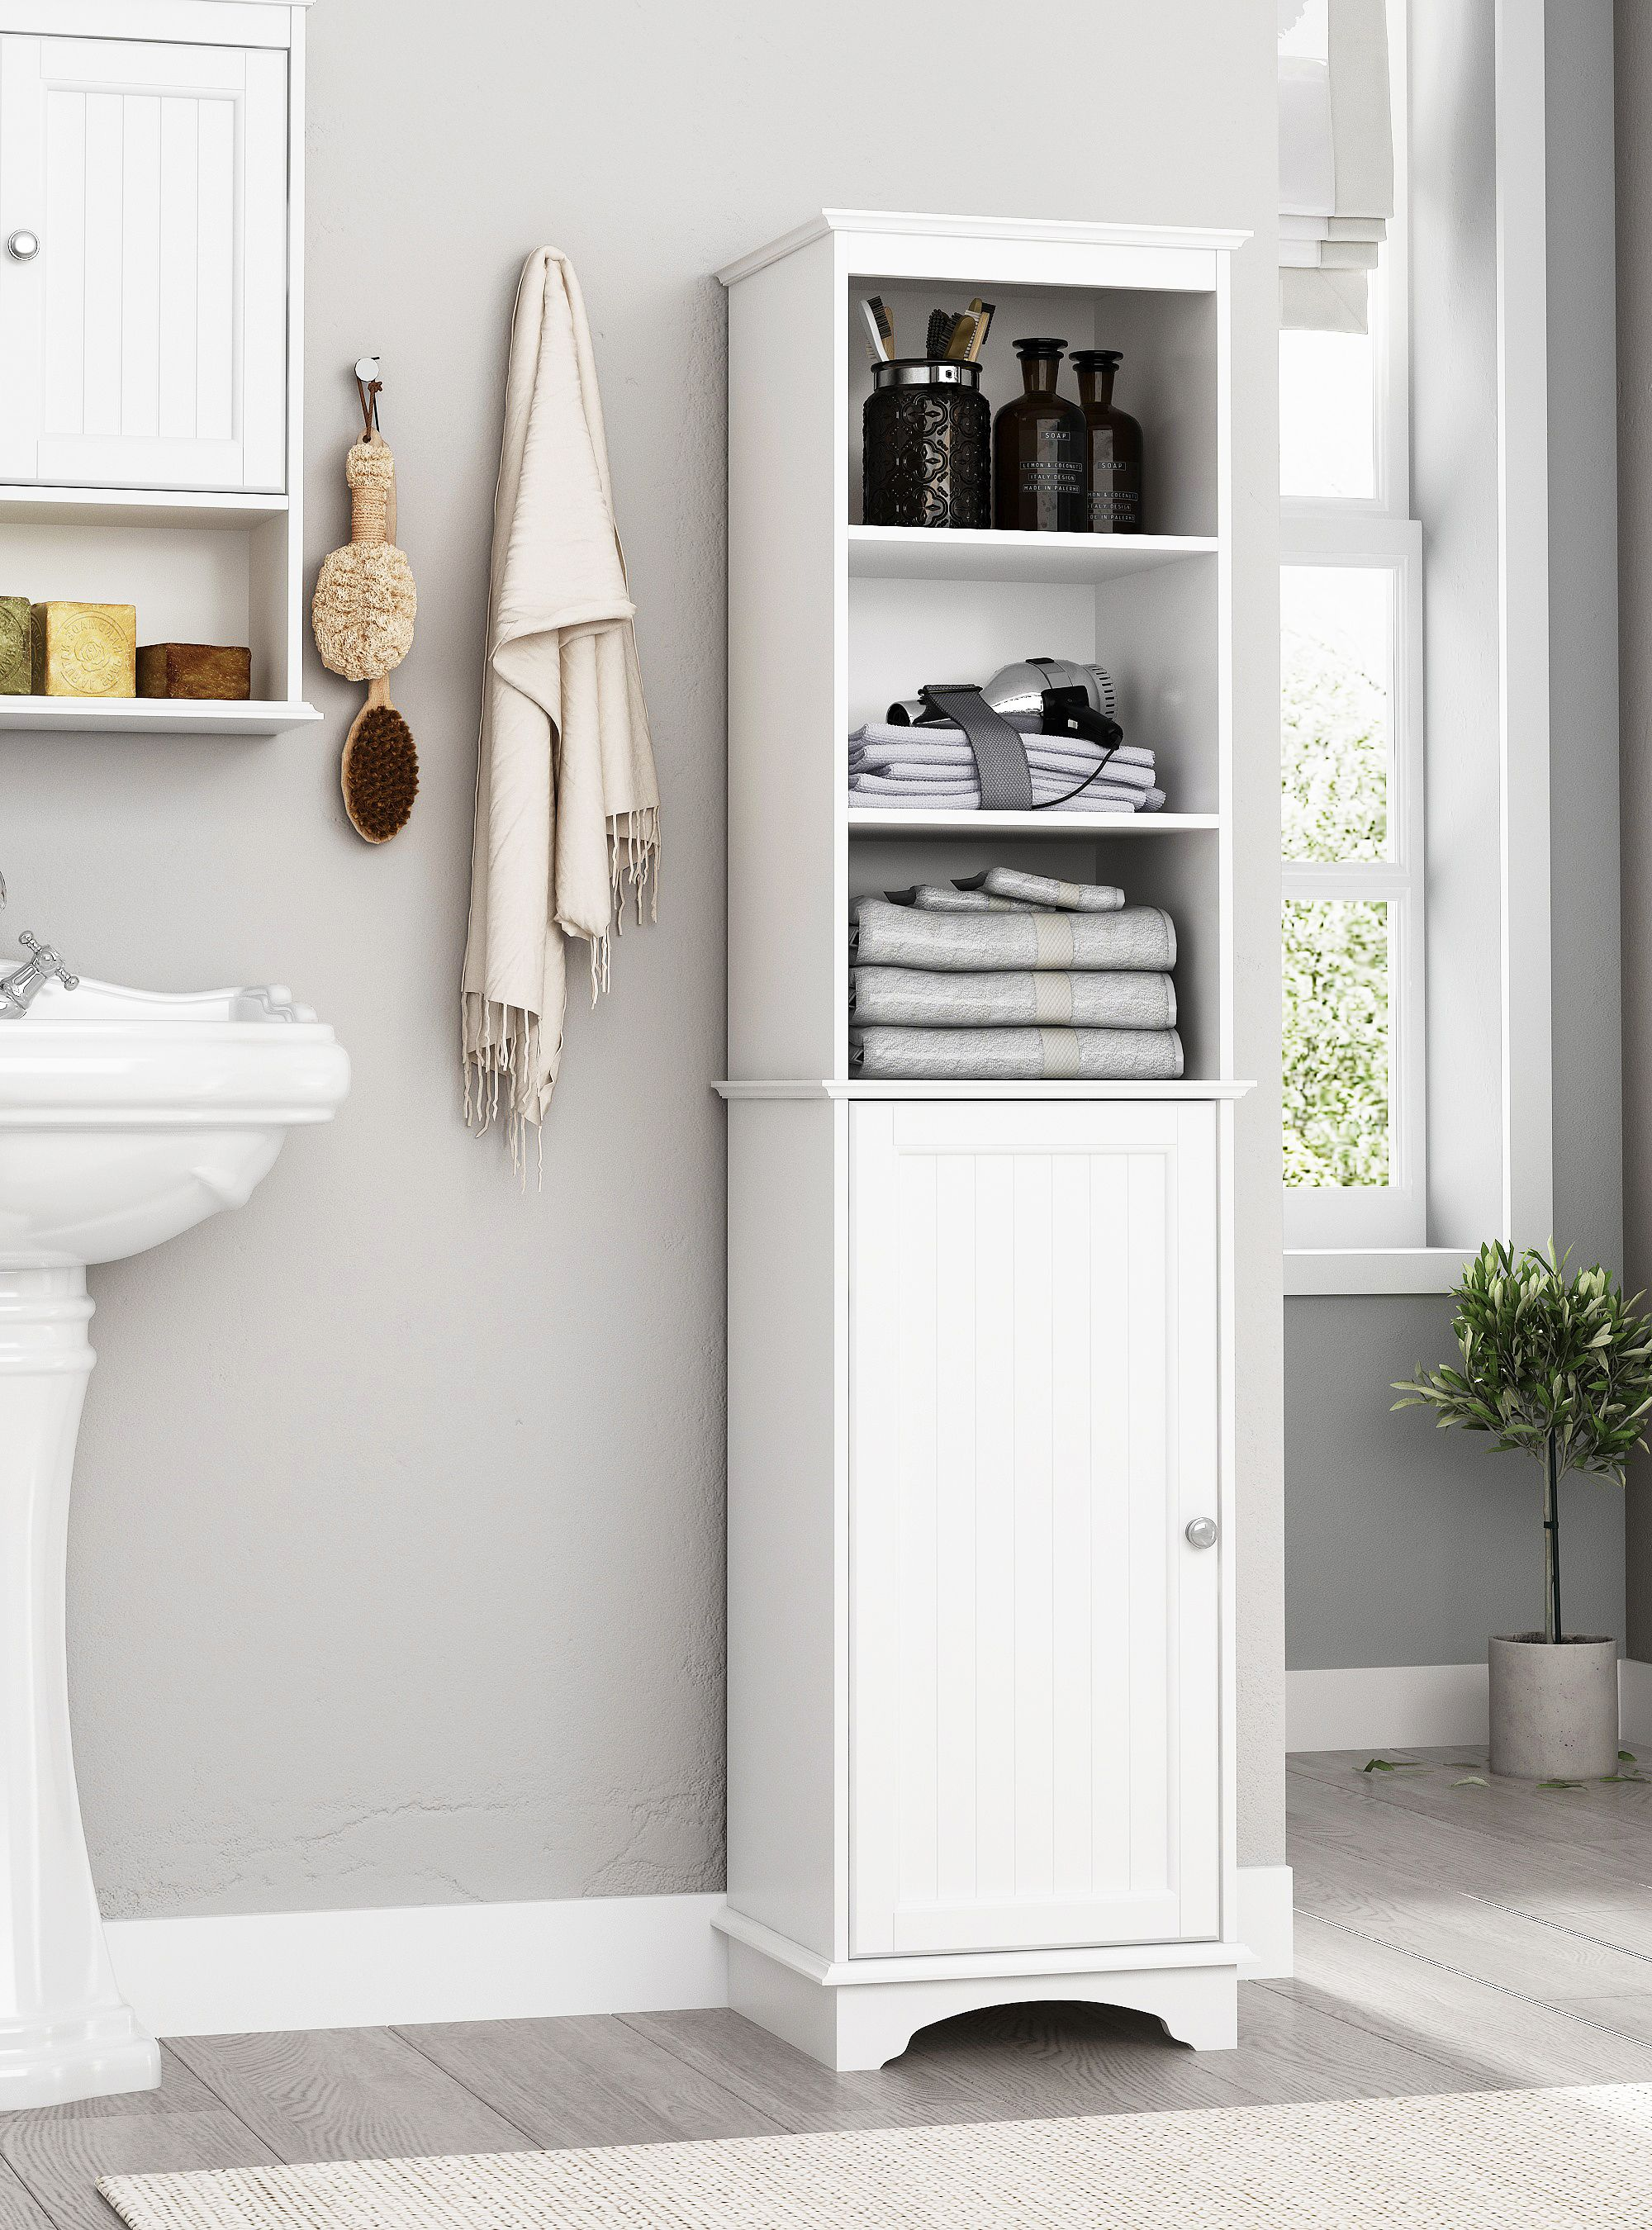 Free 2 Day Shipping Buy Spirich Home Freestanding Storage Cabinet With Three Tier Shelves Bathroom Freestanding Bathroom Storage Tower Tall Bathroom Storage [ 2700 x 2000 Pixel ]